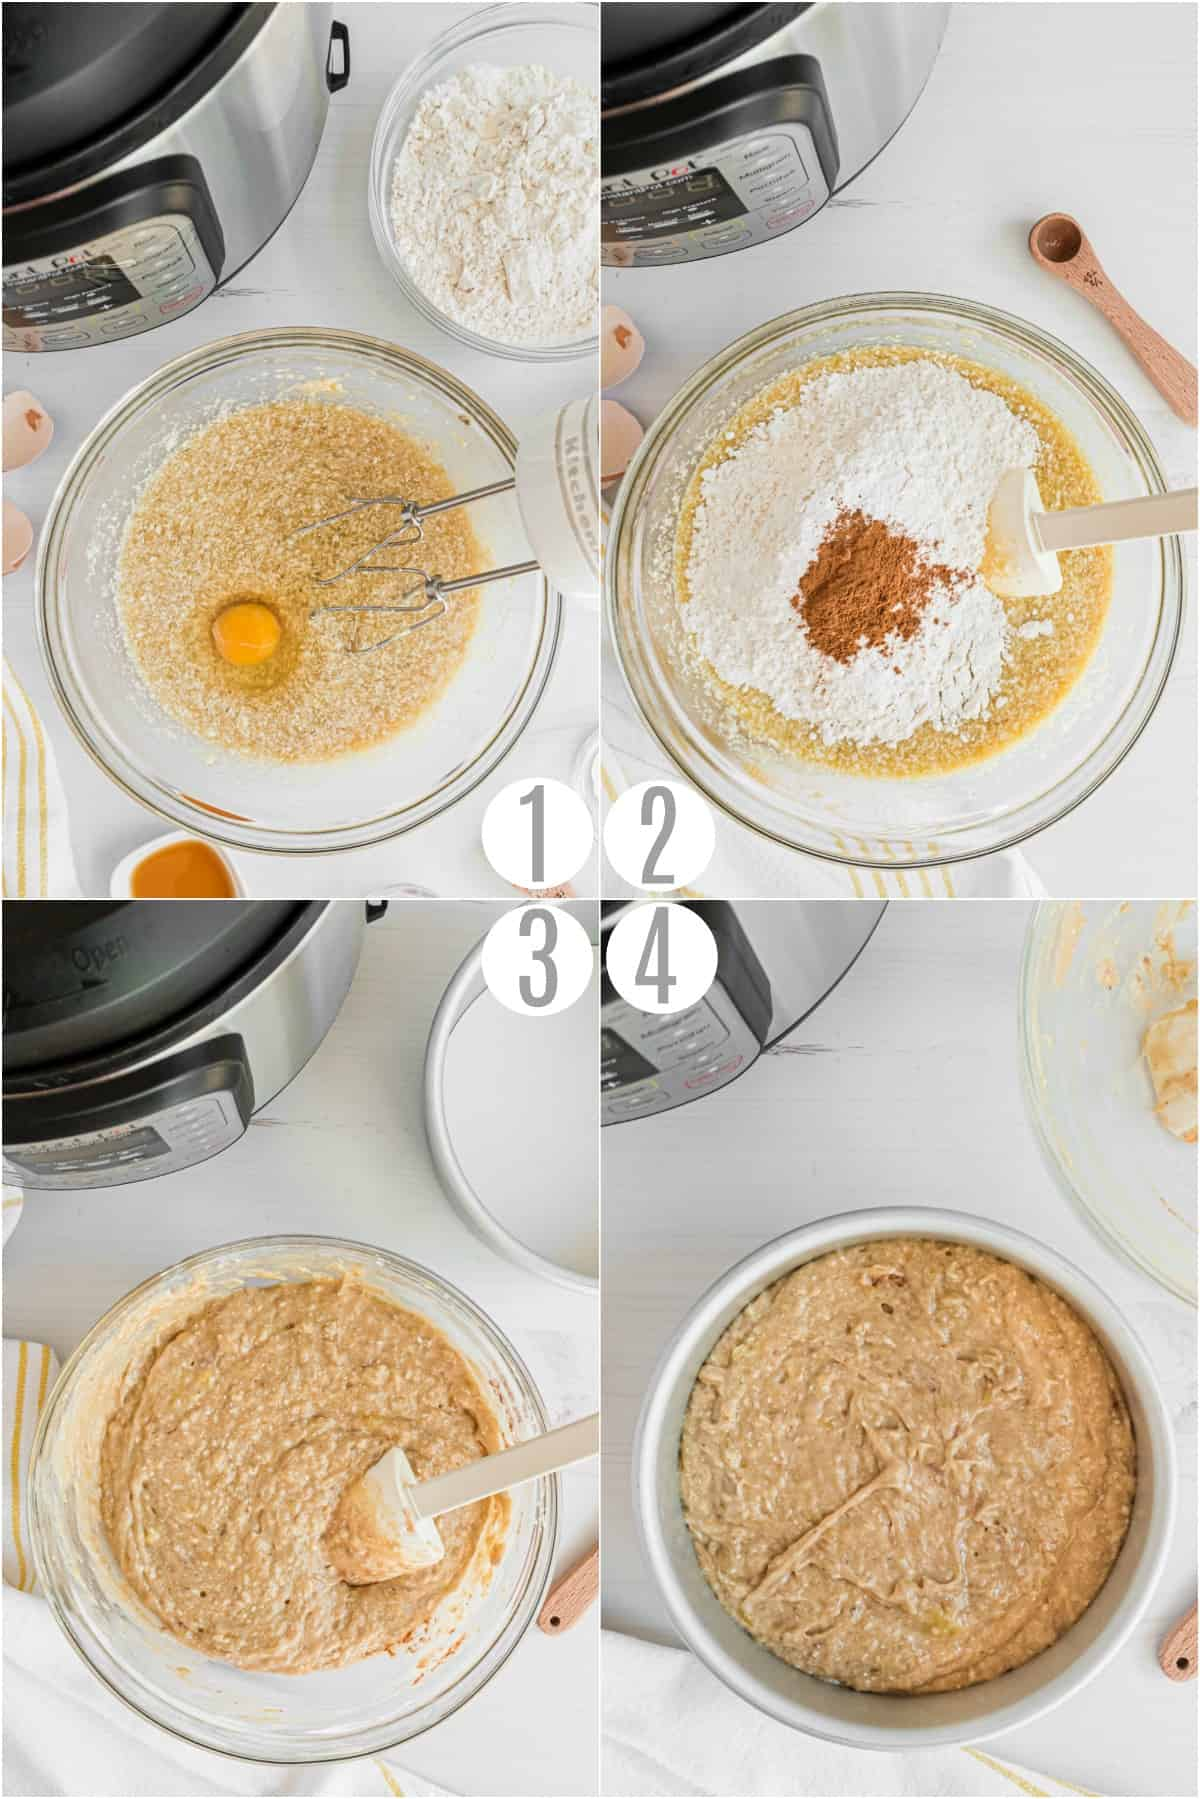 Step by step photos showing how to make banana bread batter.